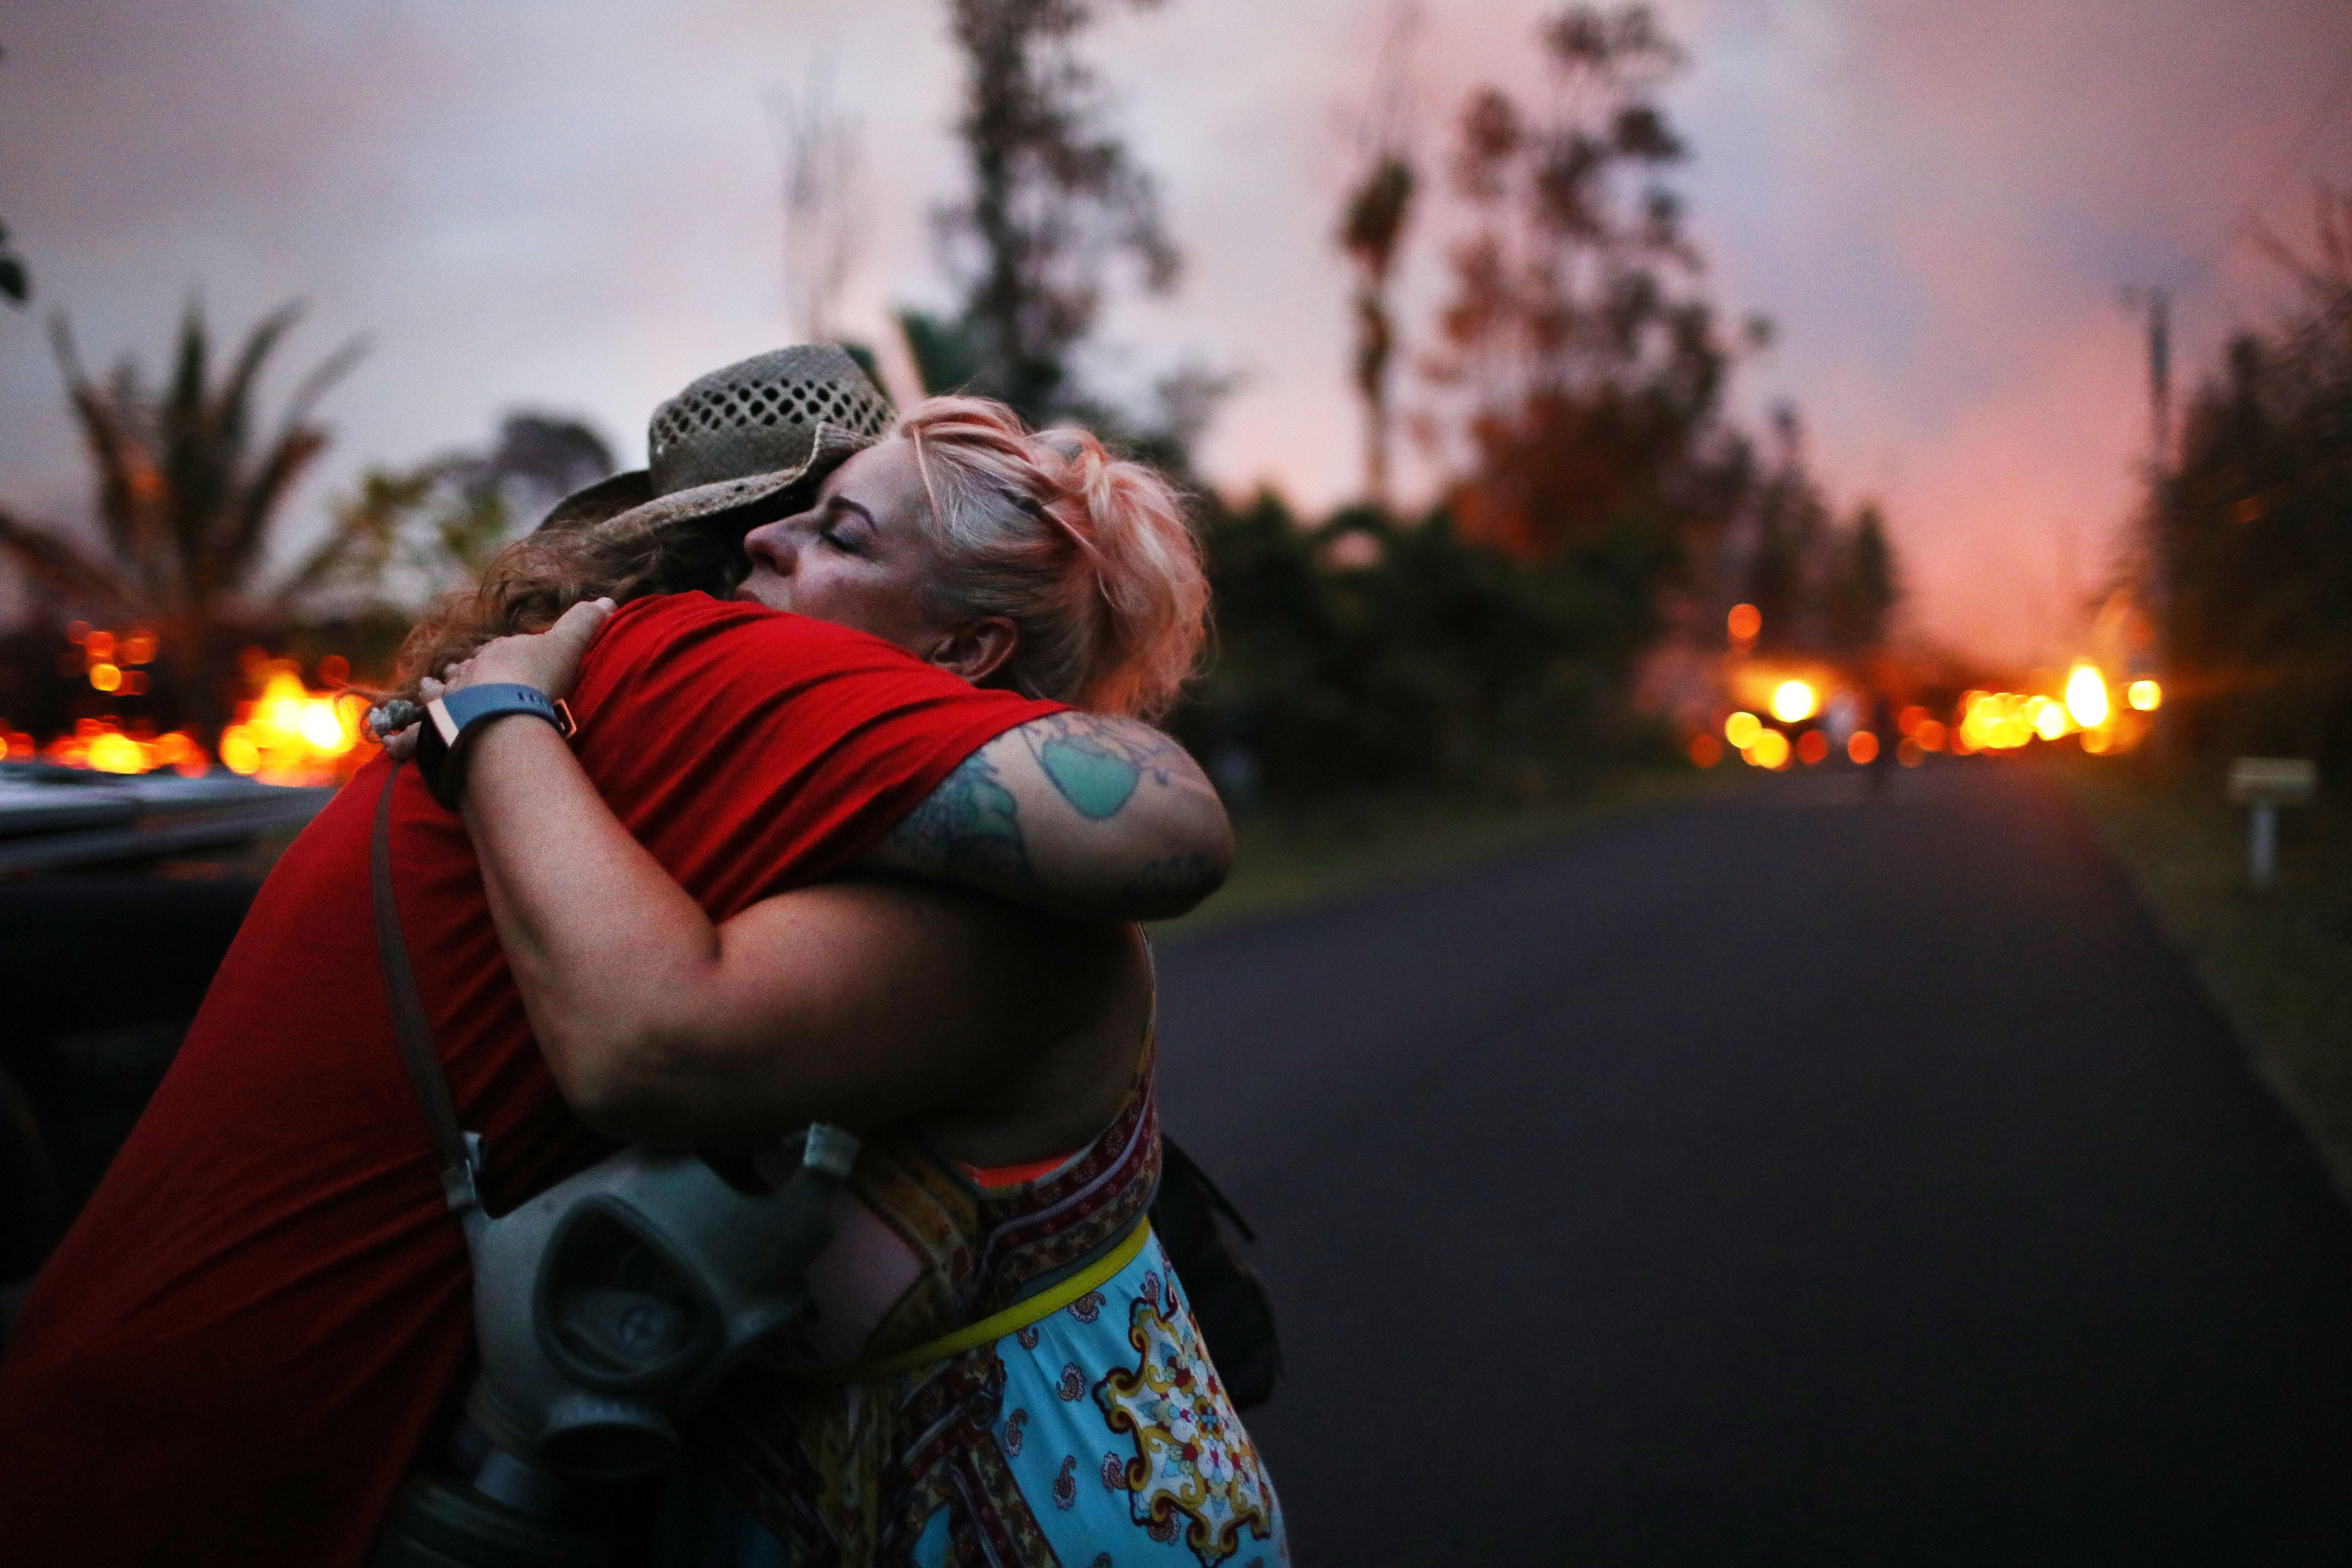 <p>Zivile Roditis hugs Howie Rosin (L), shortly after Roditis' home was destroyed by lava from a Kilauea volcano fissure, in Leilani Estates, on Hawaii's Big Island, on May 25, 2018 in Pahoa, Hawaii. (Photo: Mario Tama/Getty Images) </p>